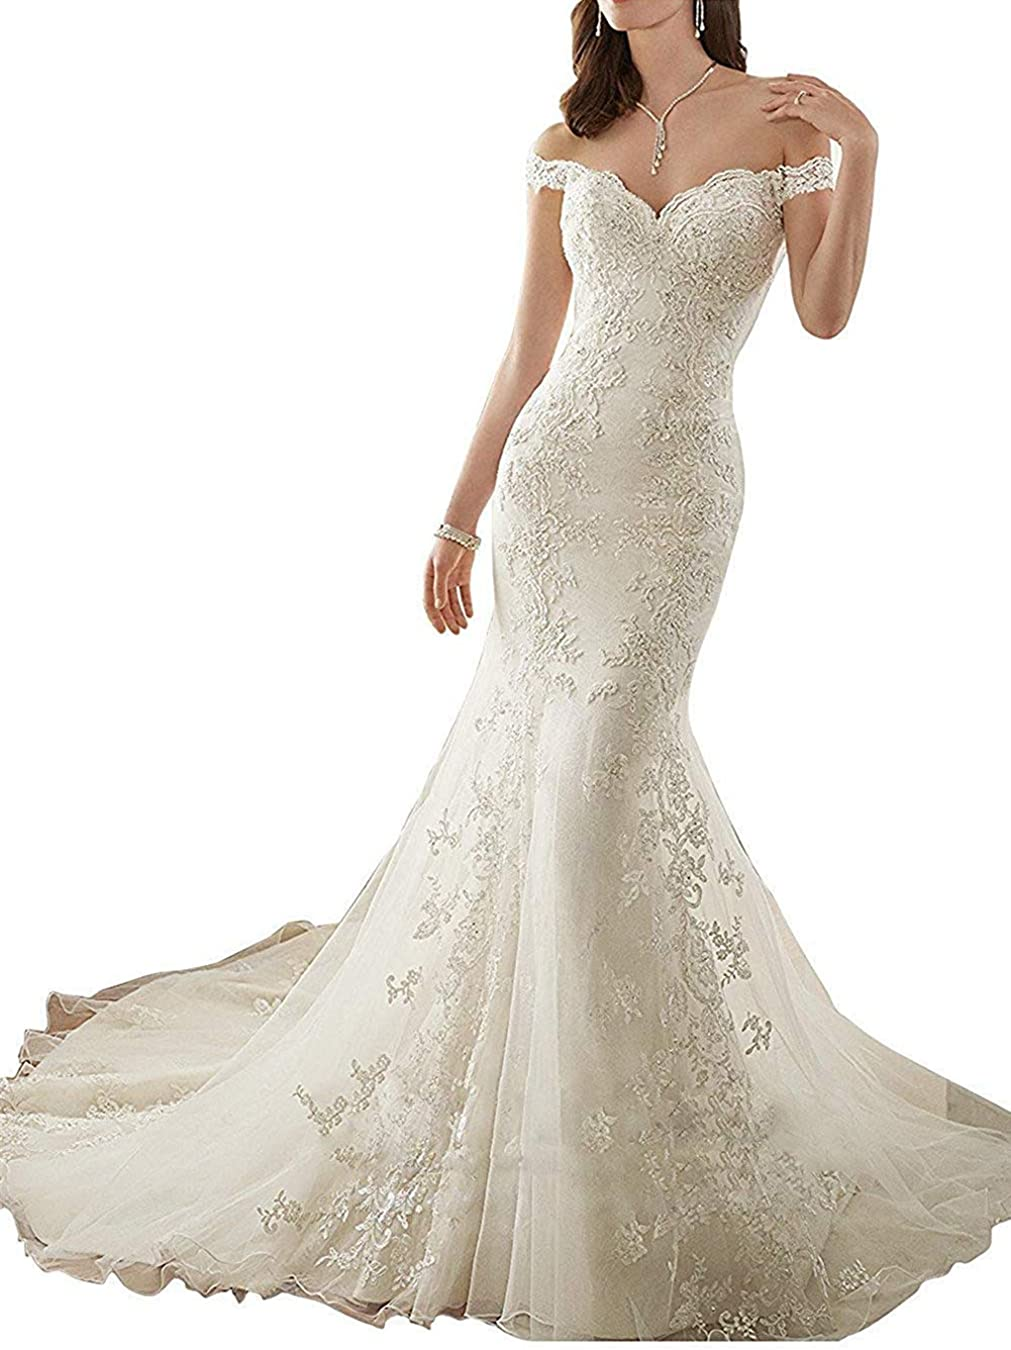 Hidress Women S Mermaid Wedding Dresses For Bride 2019 With Long Train Bq174 At Amazon Women S Clothing Store